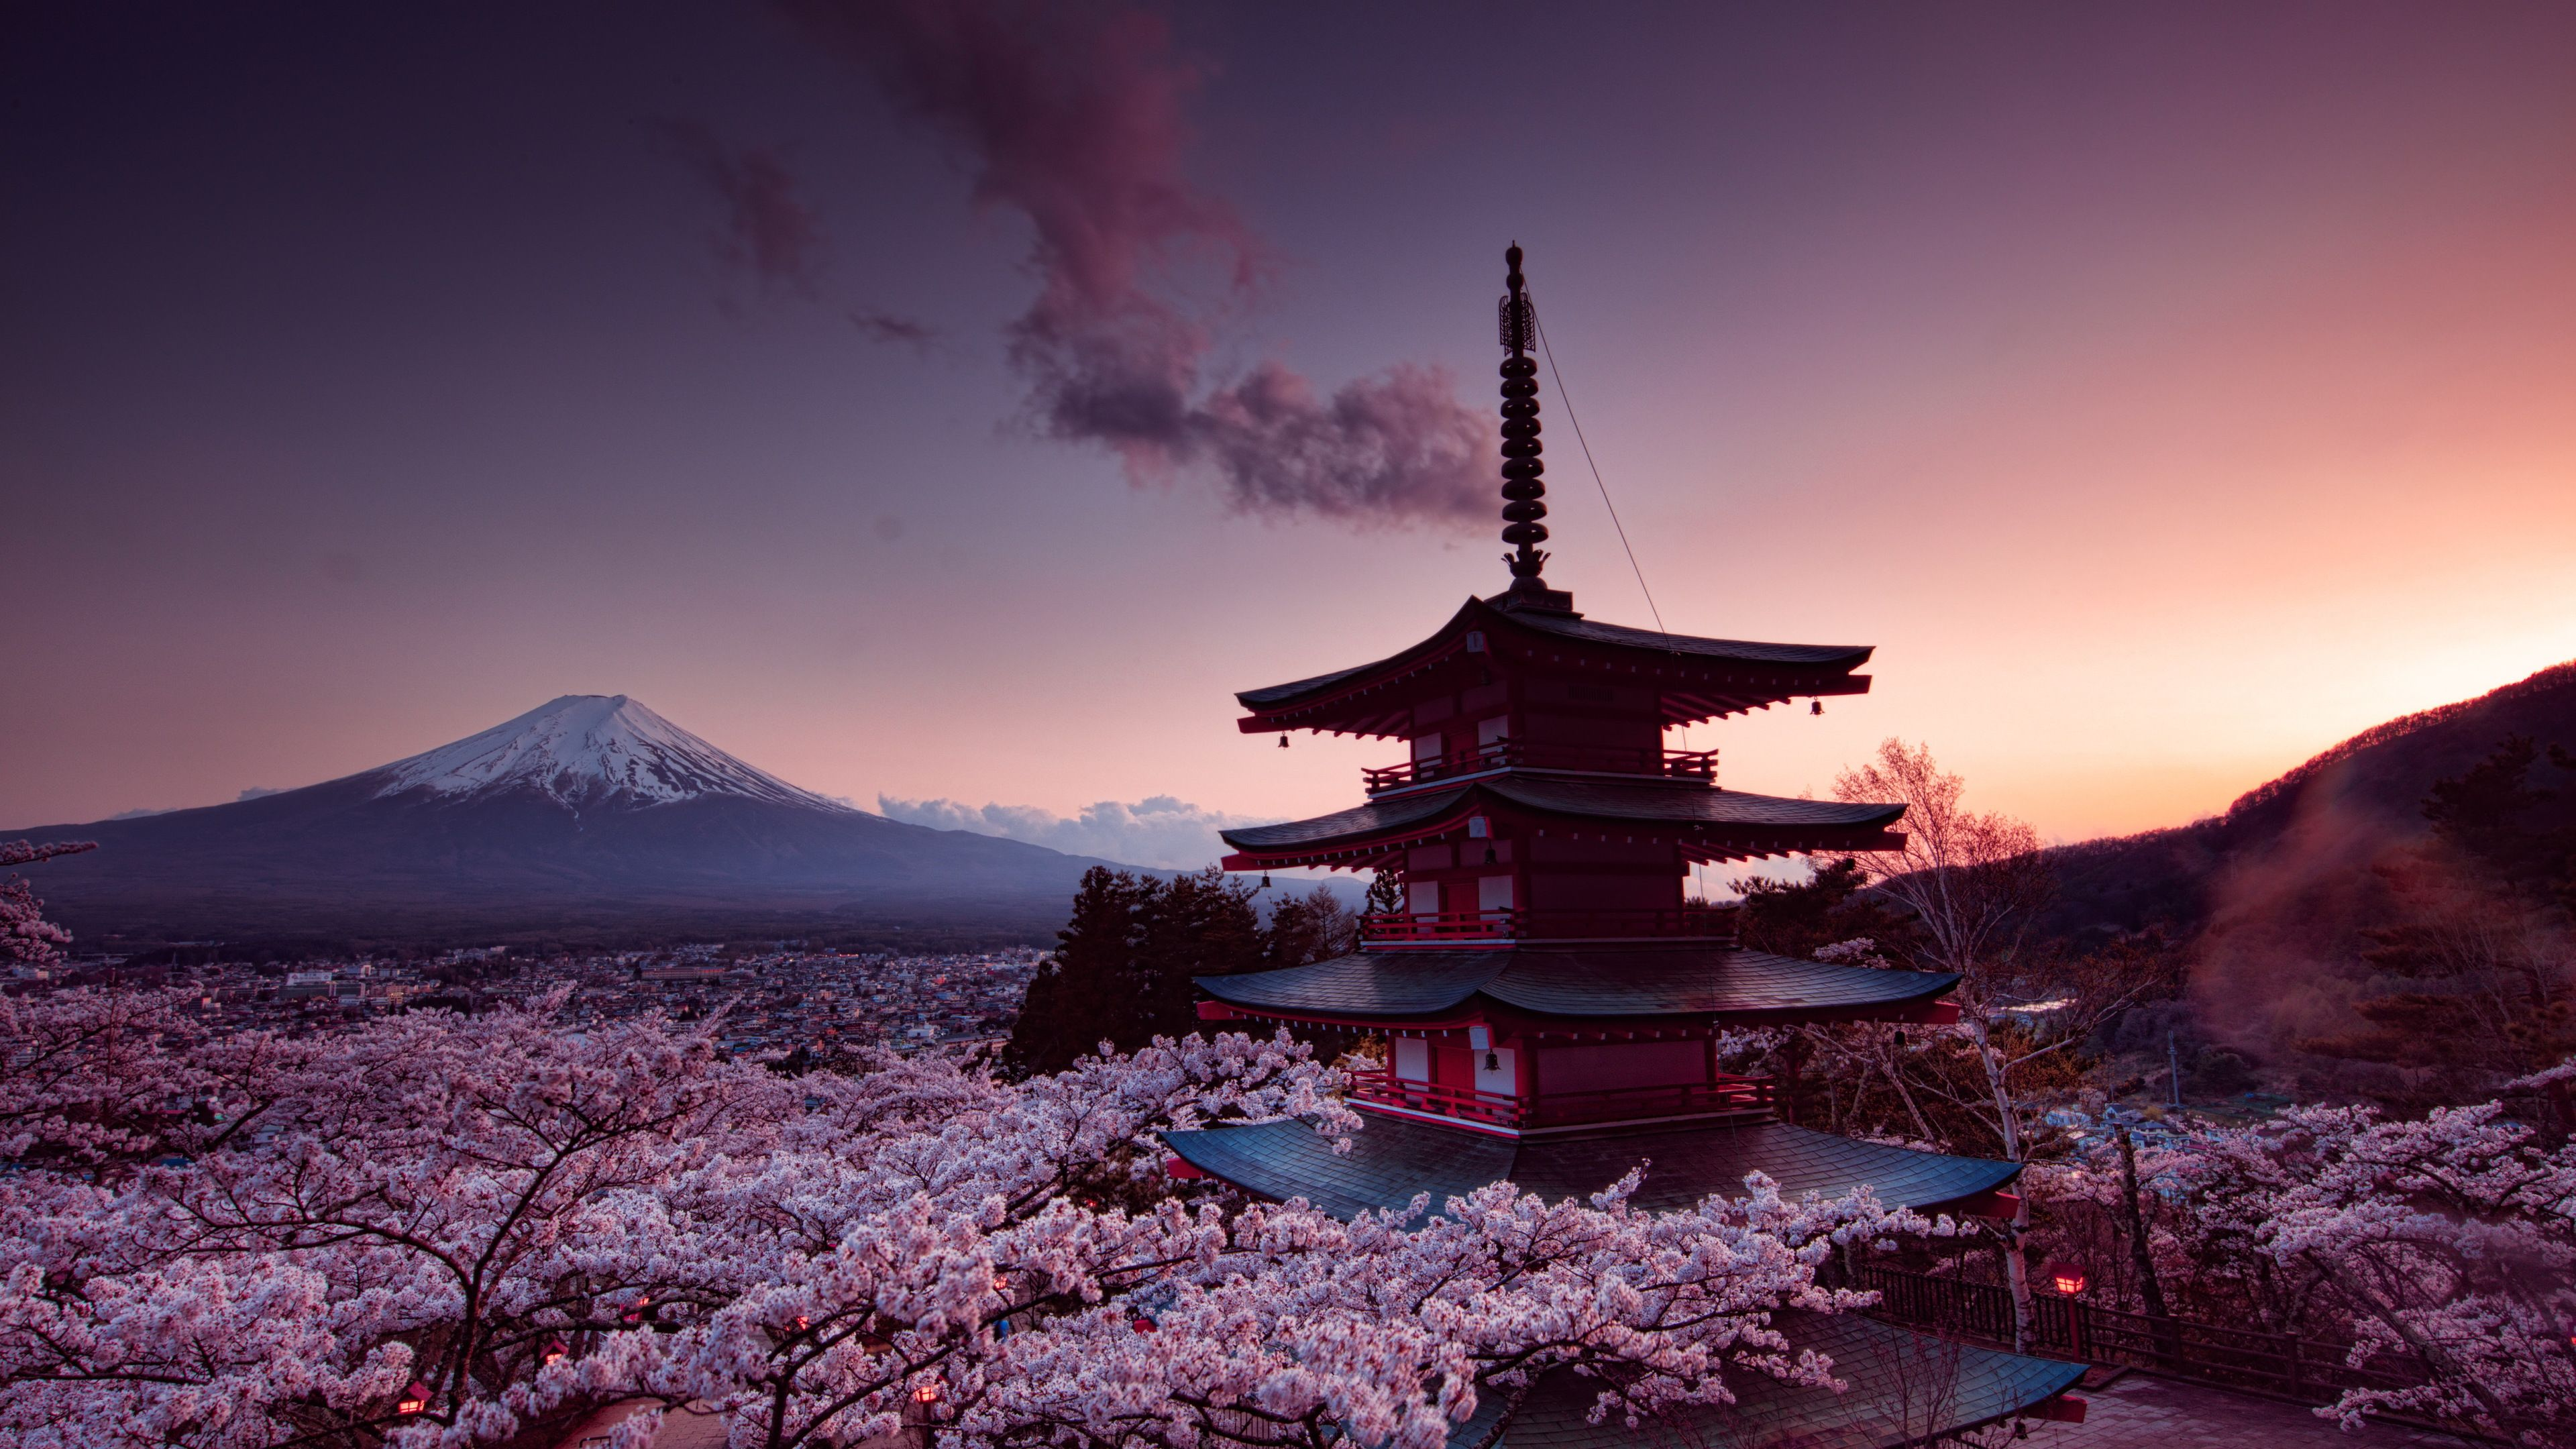 Churei Tower Mount Fuji In Japan 4k World Wallpapers Nature Wallpapers Mount Fuji Wallpapers Japan Wallpapers Hd Mount Fuji World Wallpaper City Wallpaper